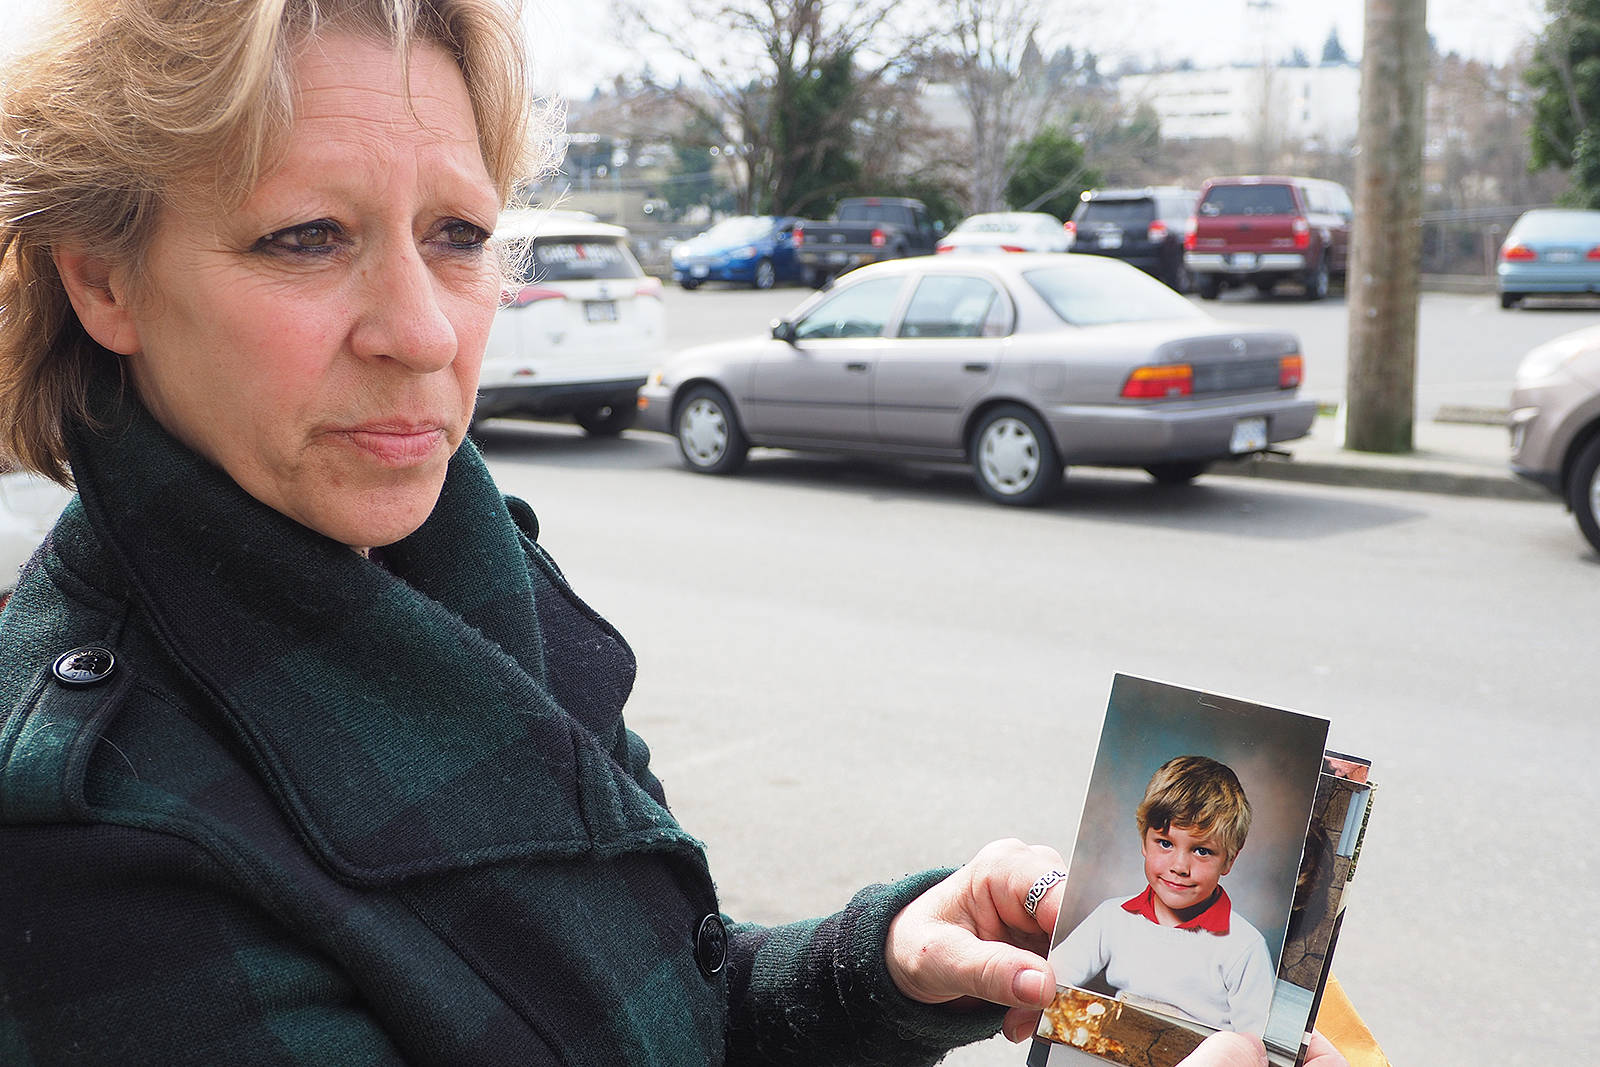 Wanda Campbell, mother of Andrew McLean, who was shot to death in the Howard Johnson Harbourside Hotel lobby in 2017, holds a photo of McLean when he was a child. Campbell submitted a victim's statement and watched video evidence of her son's killing during the opening day of sentencing proceedings for Brandon Tyler Woody, who pleaded guilty to second-degree murder Feb. 15. CHRIS BUSH/The News Bulletin